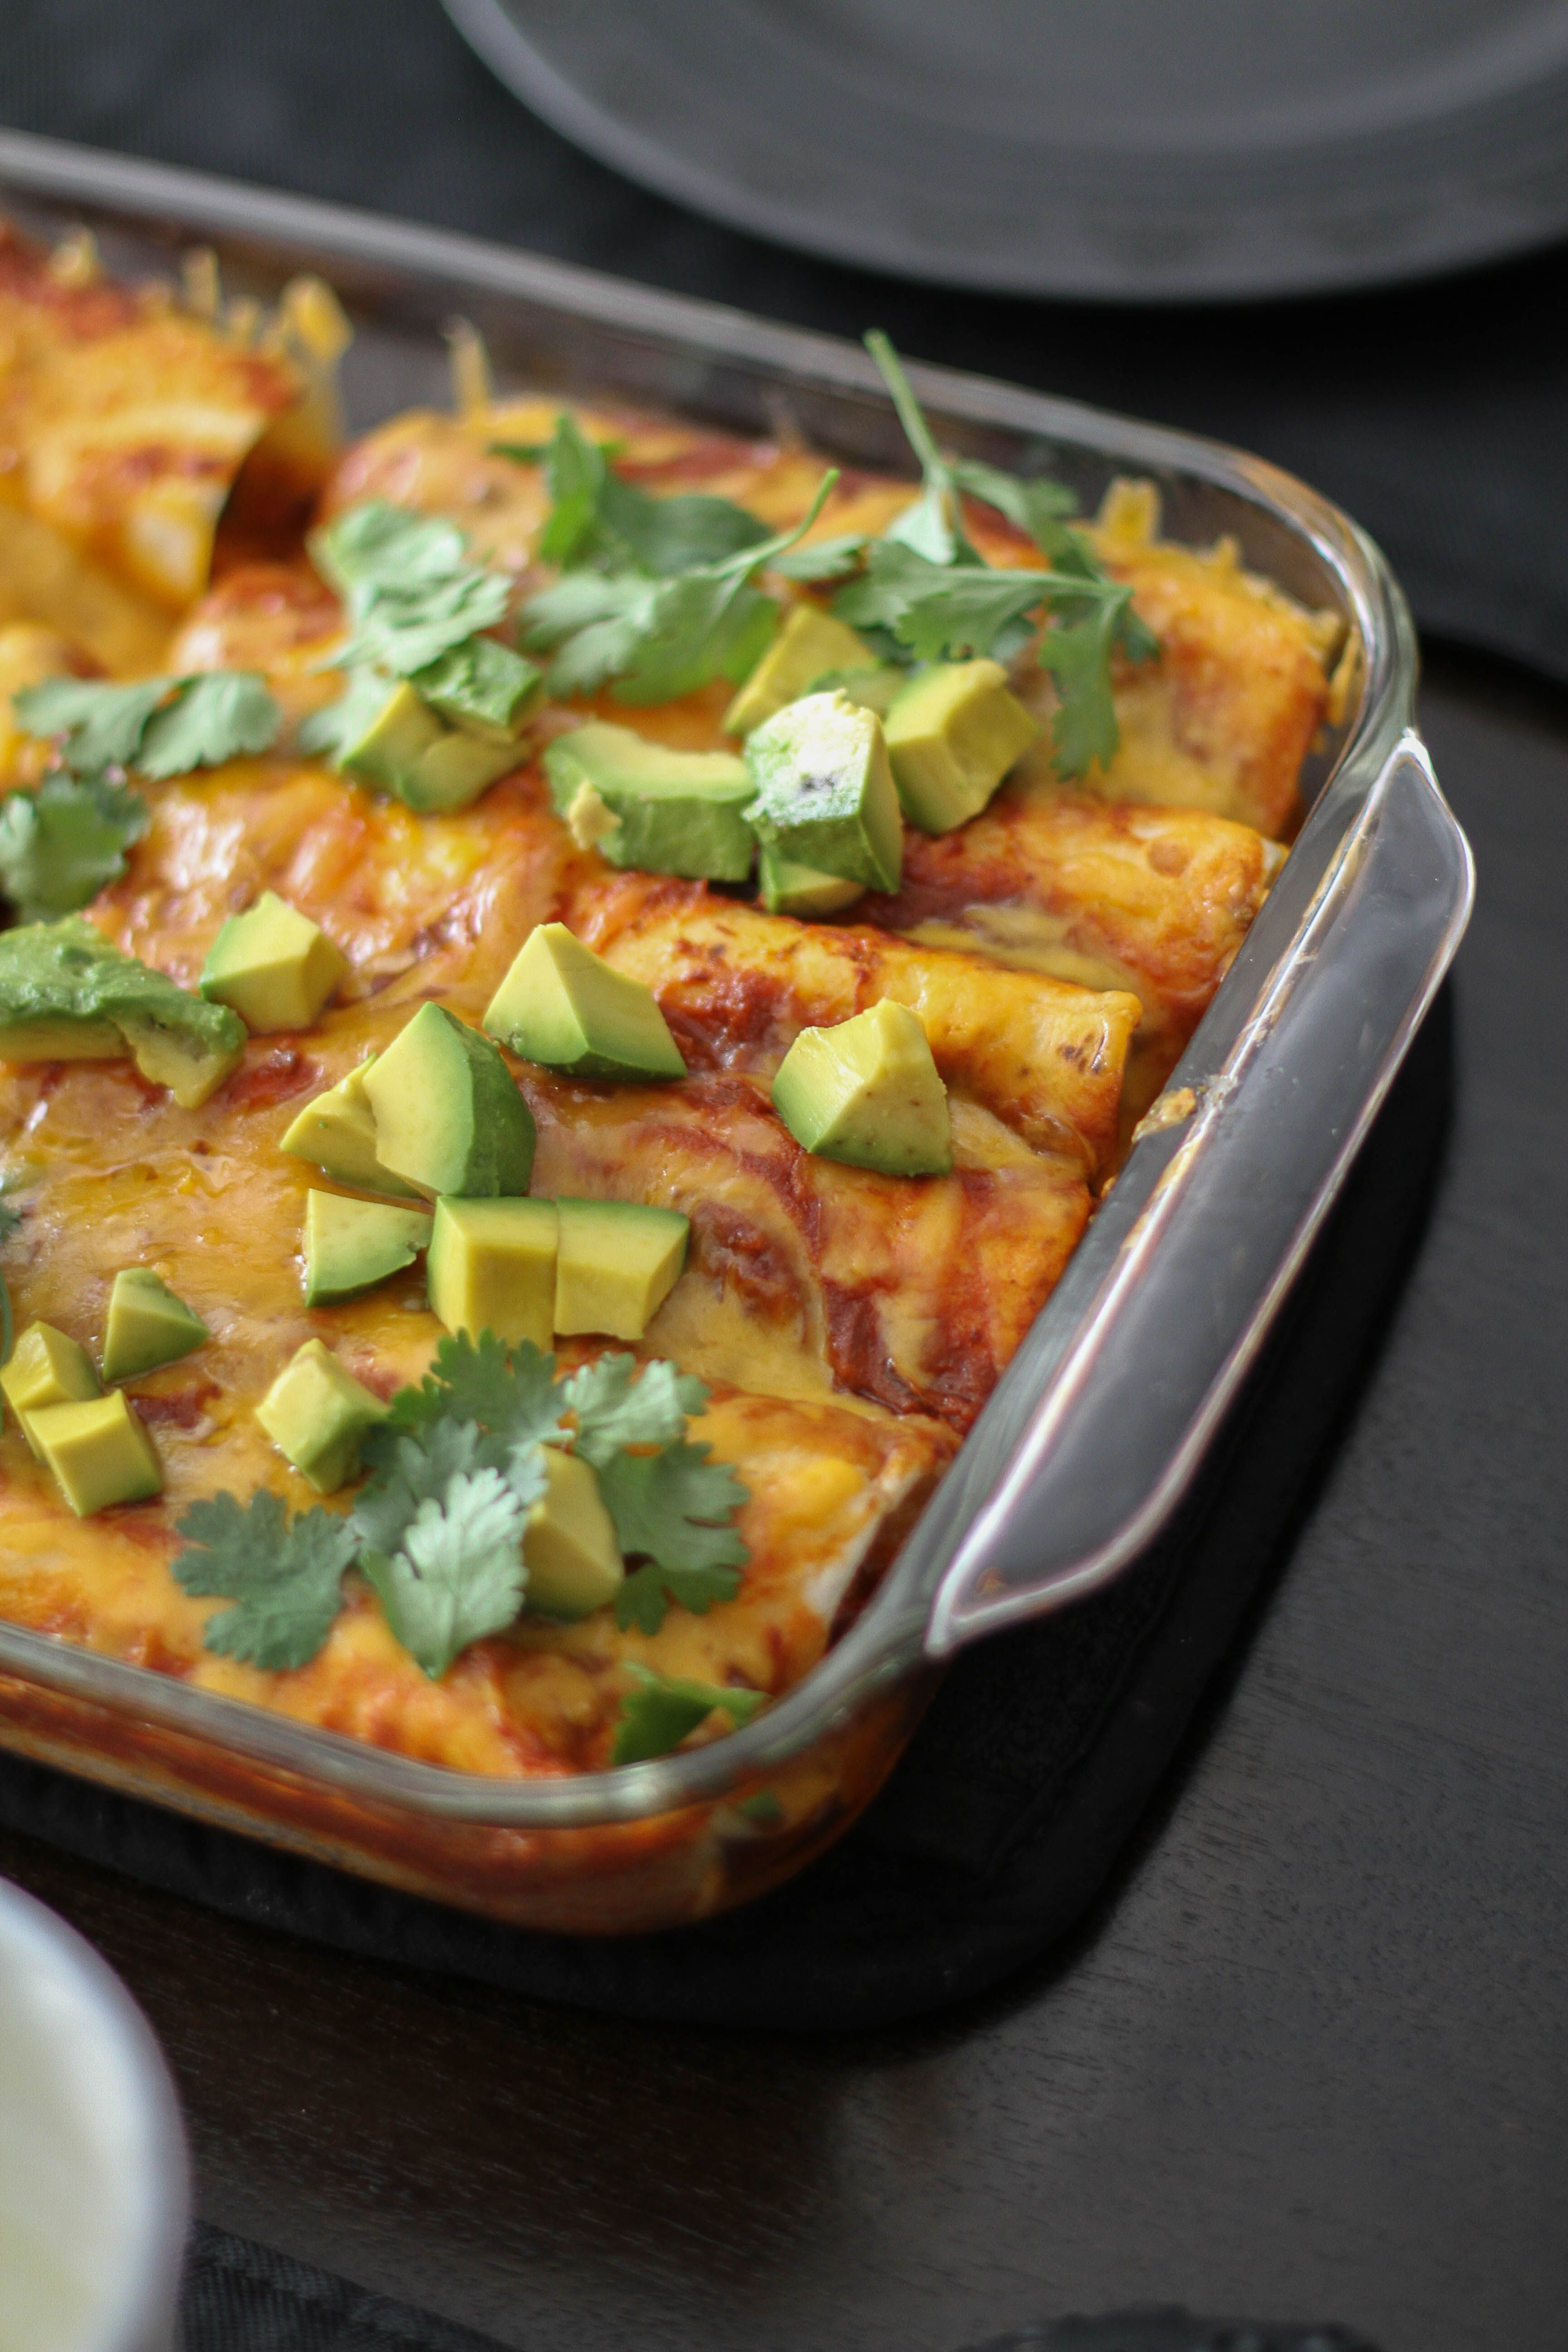 MakeAhead Chicken Enchiladas with Red Sauce Poultry